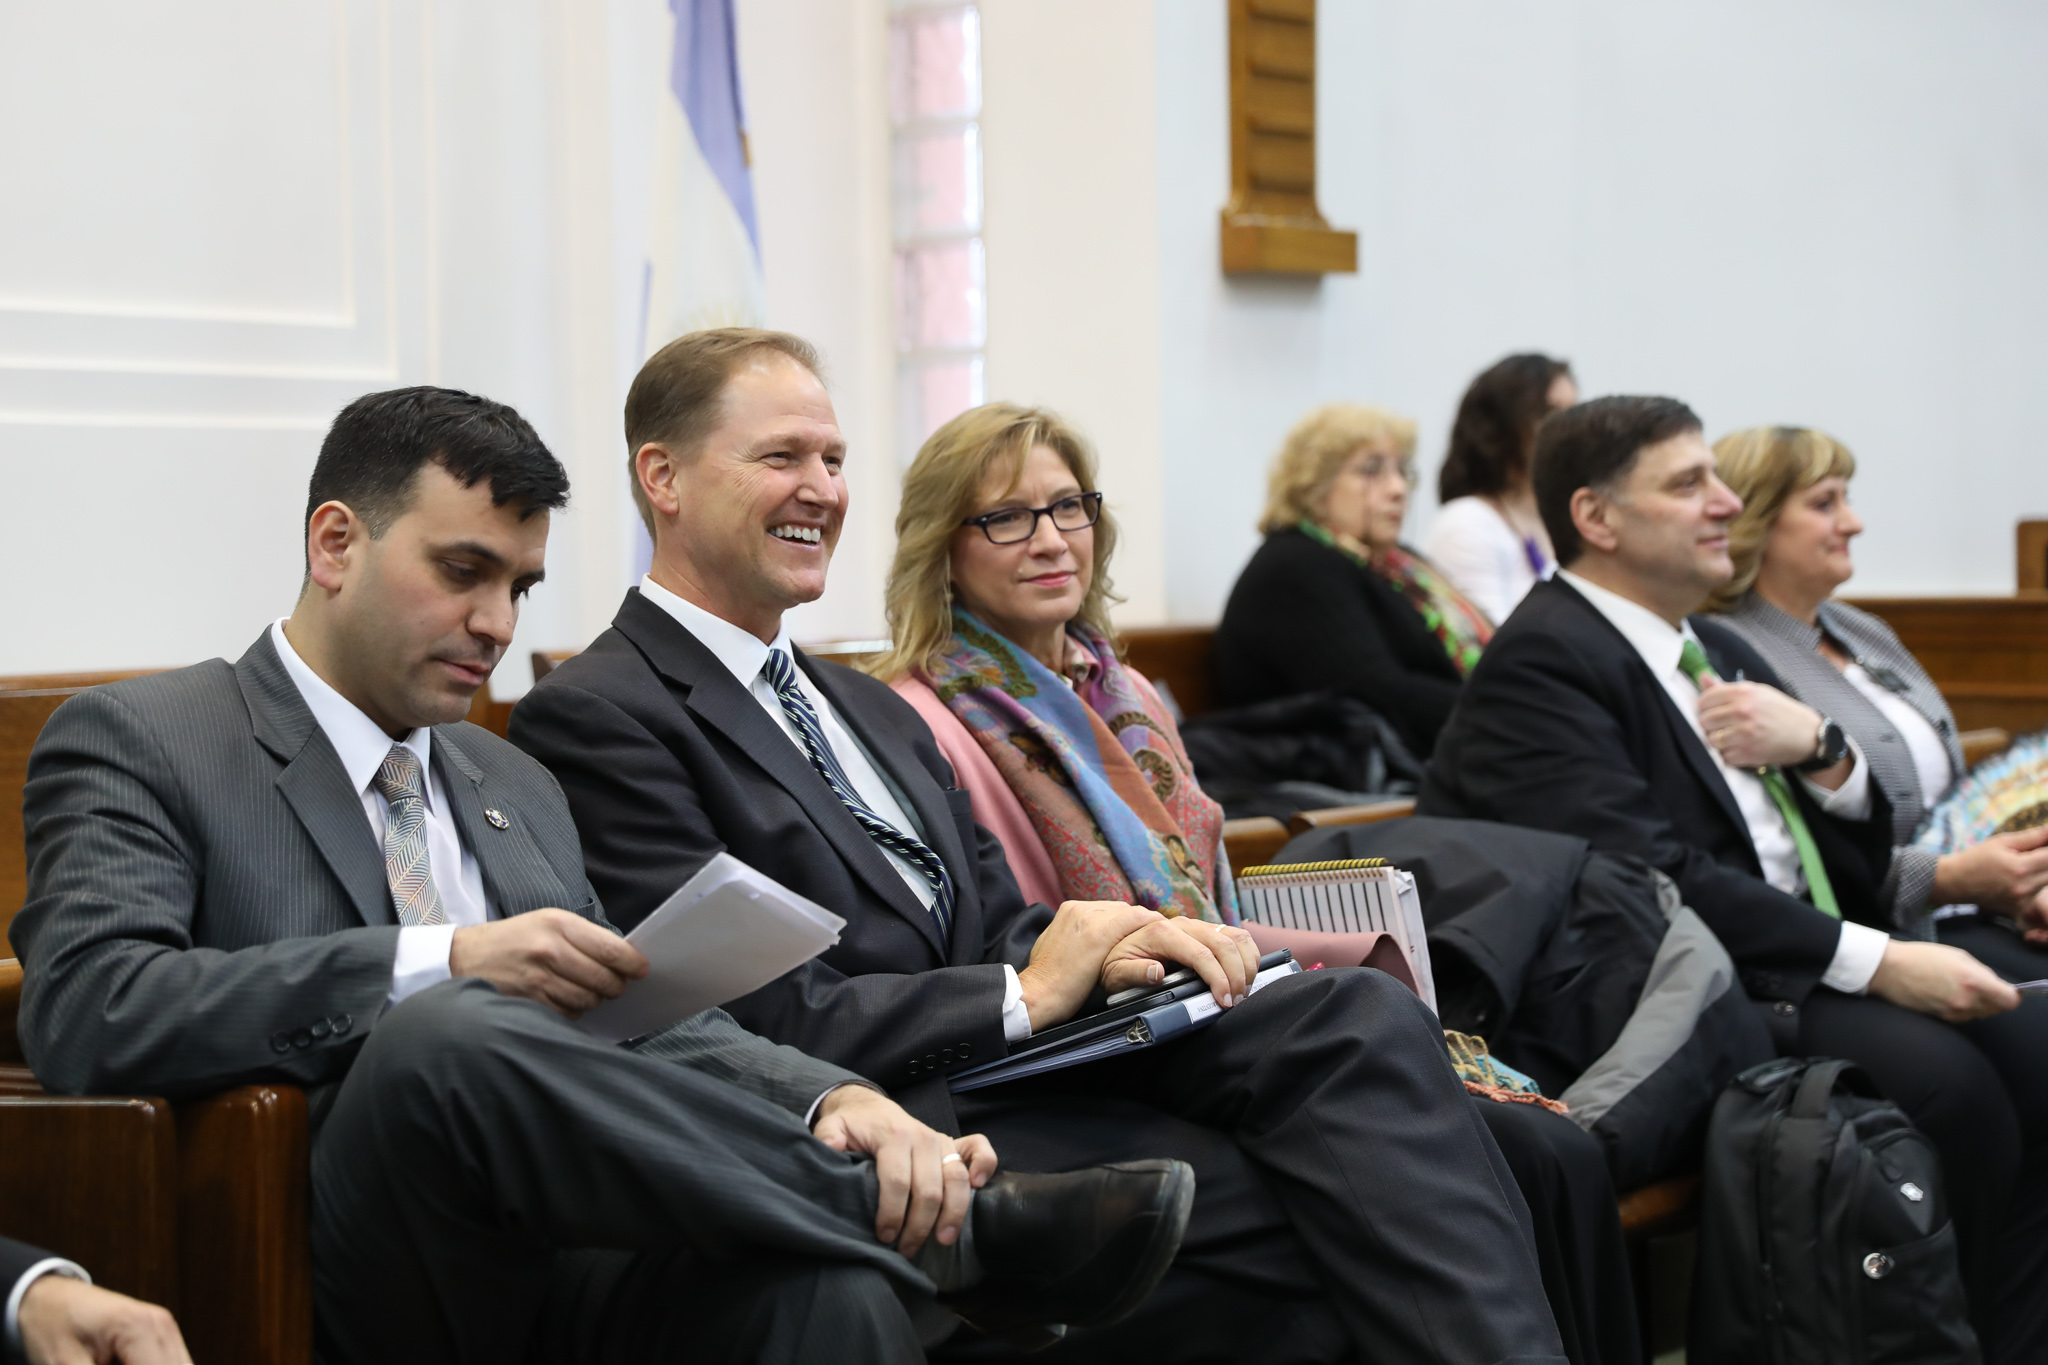 Elder Mark A. Bragg, second right, sits on the stand during the meeting where the southernmost stake in the world, the Tierra del Fuego Argentina Stake, was created on June 2, 2019.